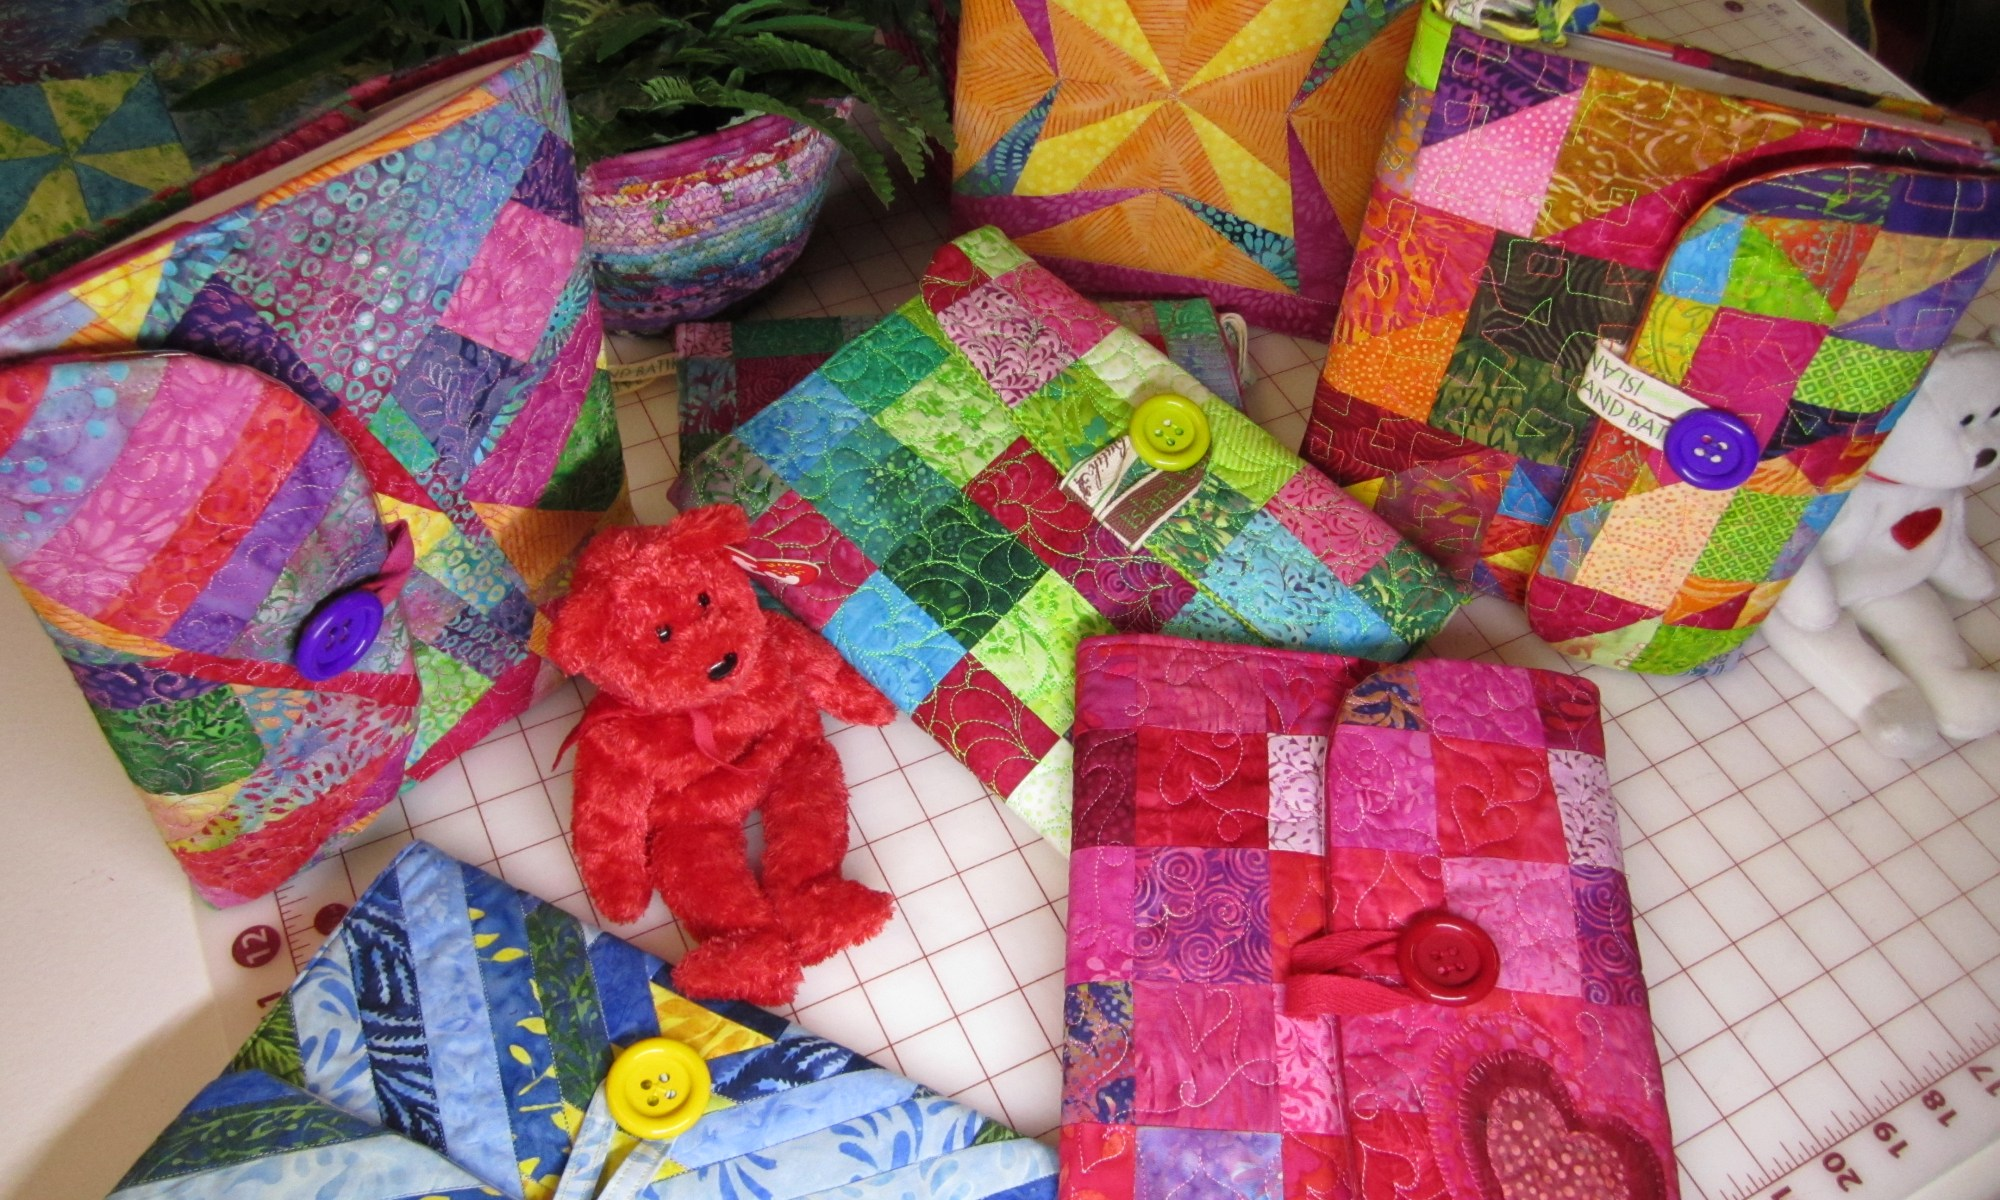 Quilted covers express creativity in the various designs used to cover a humble composition notebook